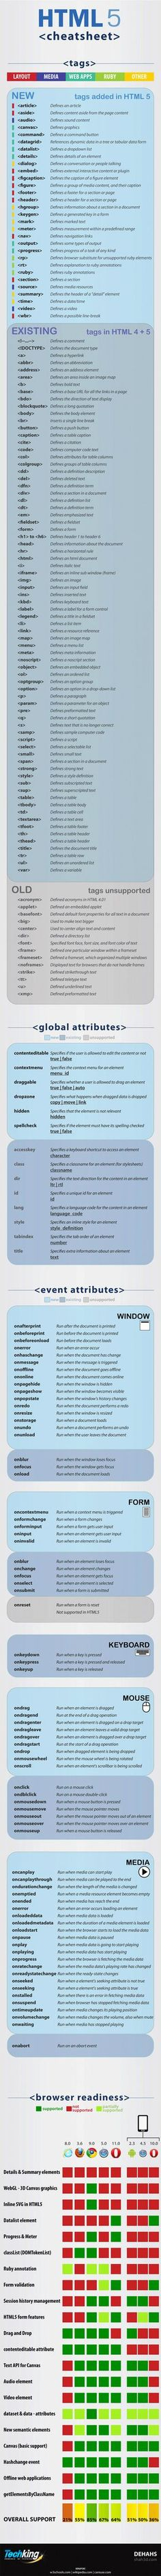 HTML 5 Cheat Sheet